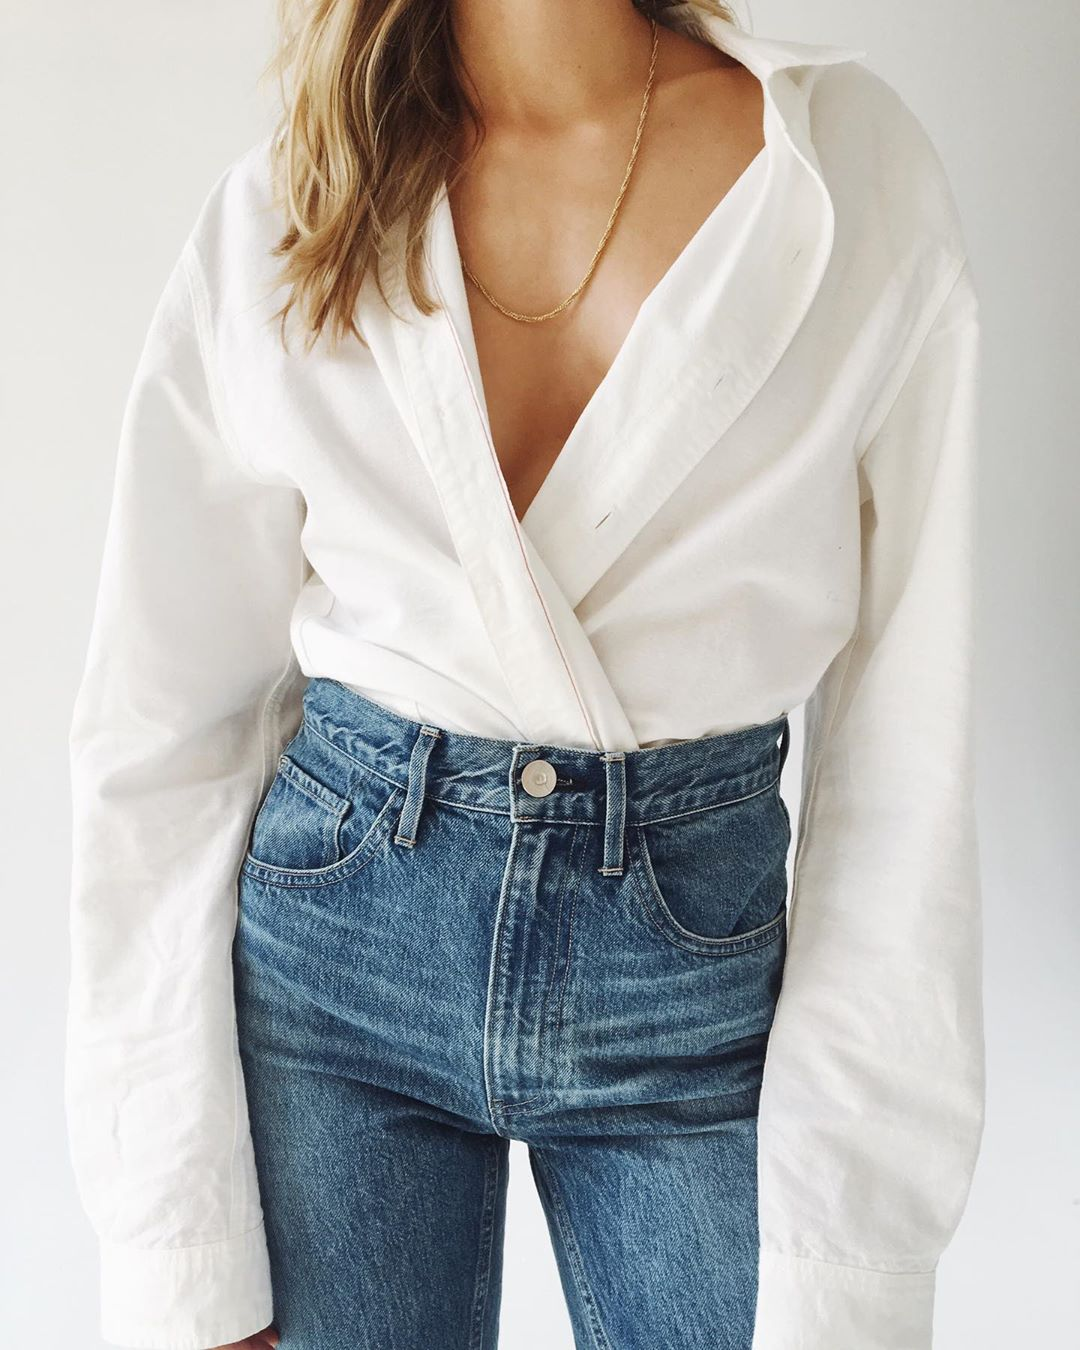 Stylish 3-Piece Denim Outfit Inspiration — White Shirt, High-Waisted Jeans, and a Gold Chain